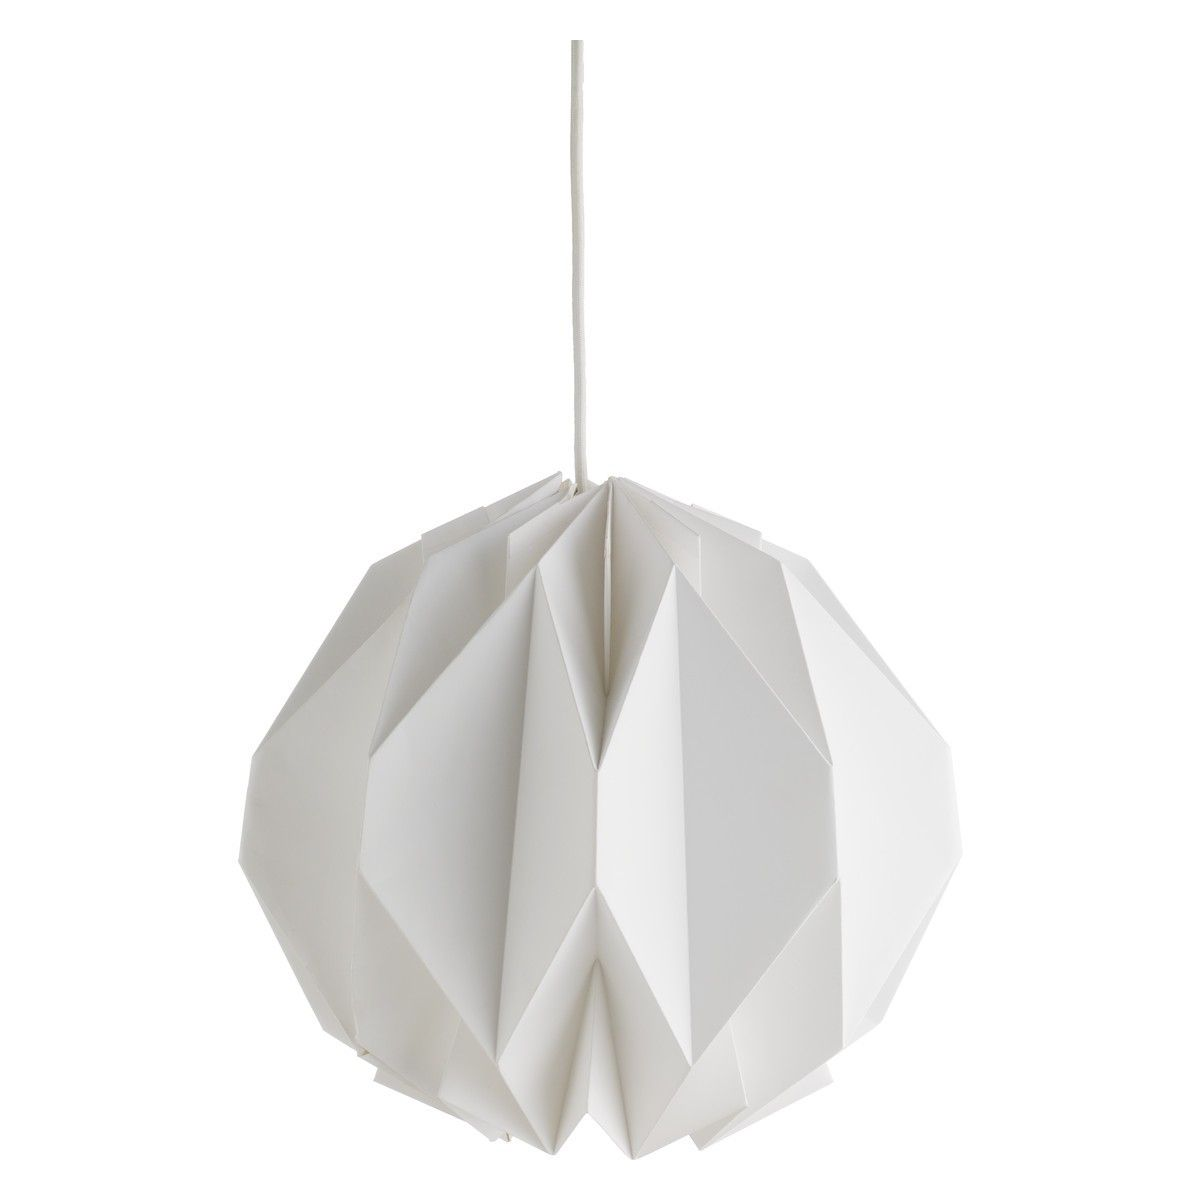 Kura small white lampshade paper lamps bedrooms and master bedroom kura small white lampshade aloadofball Image collections